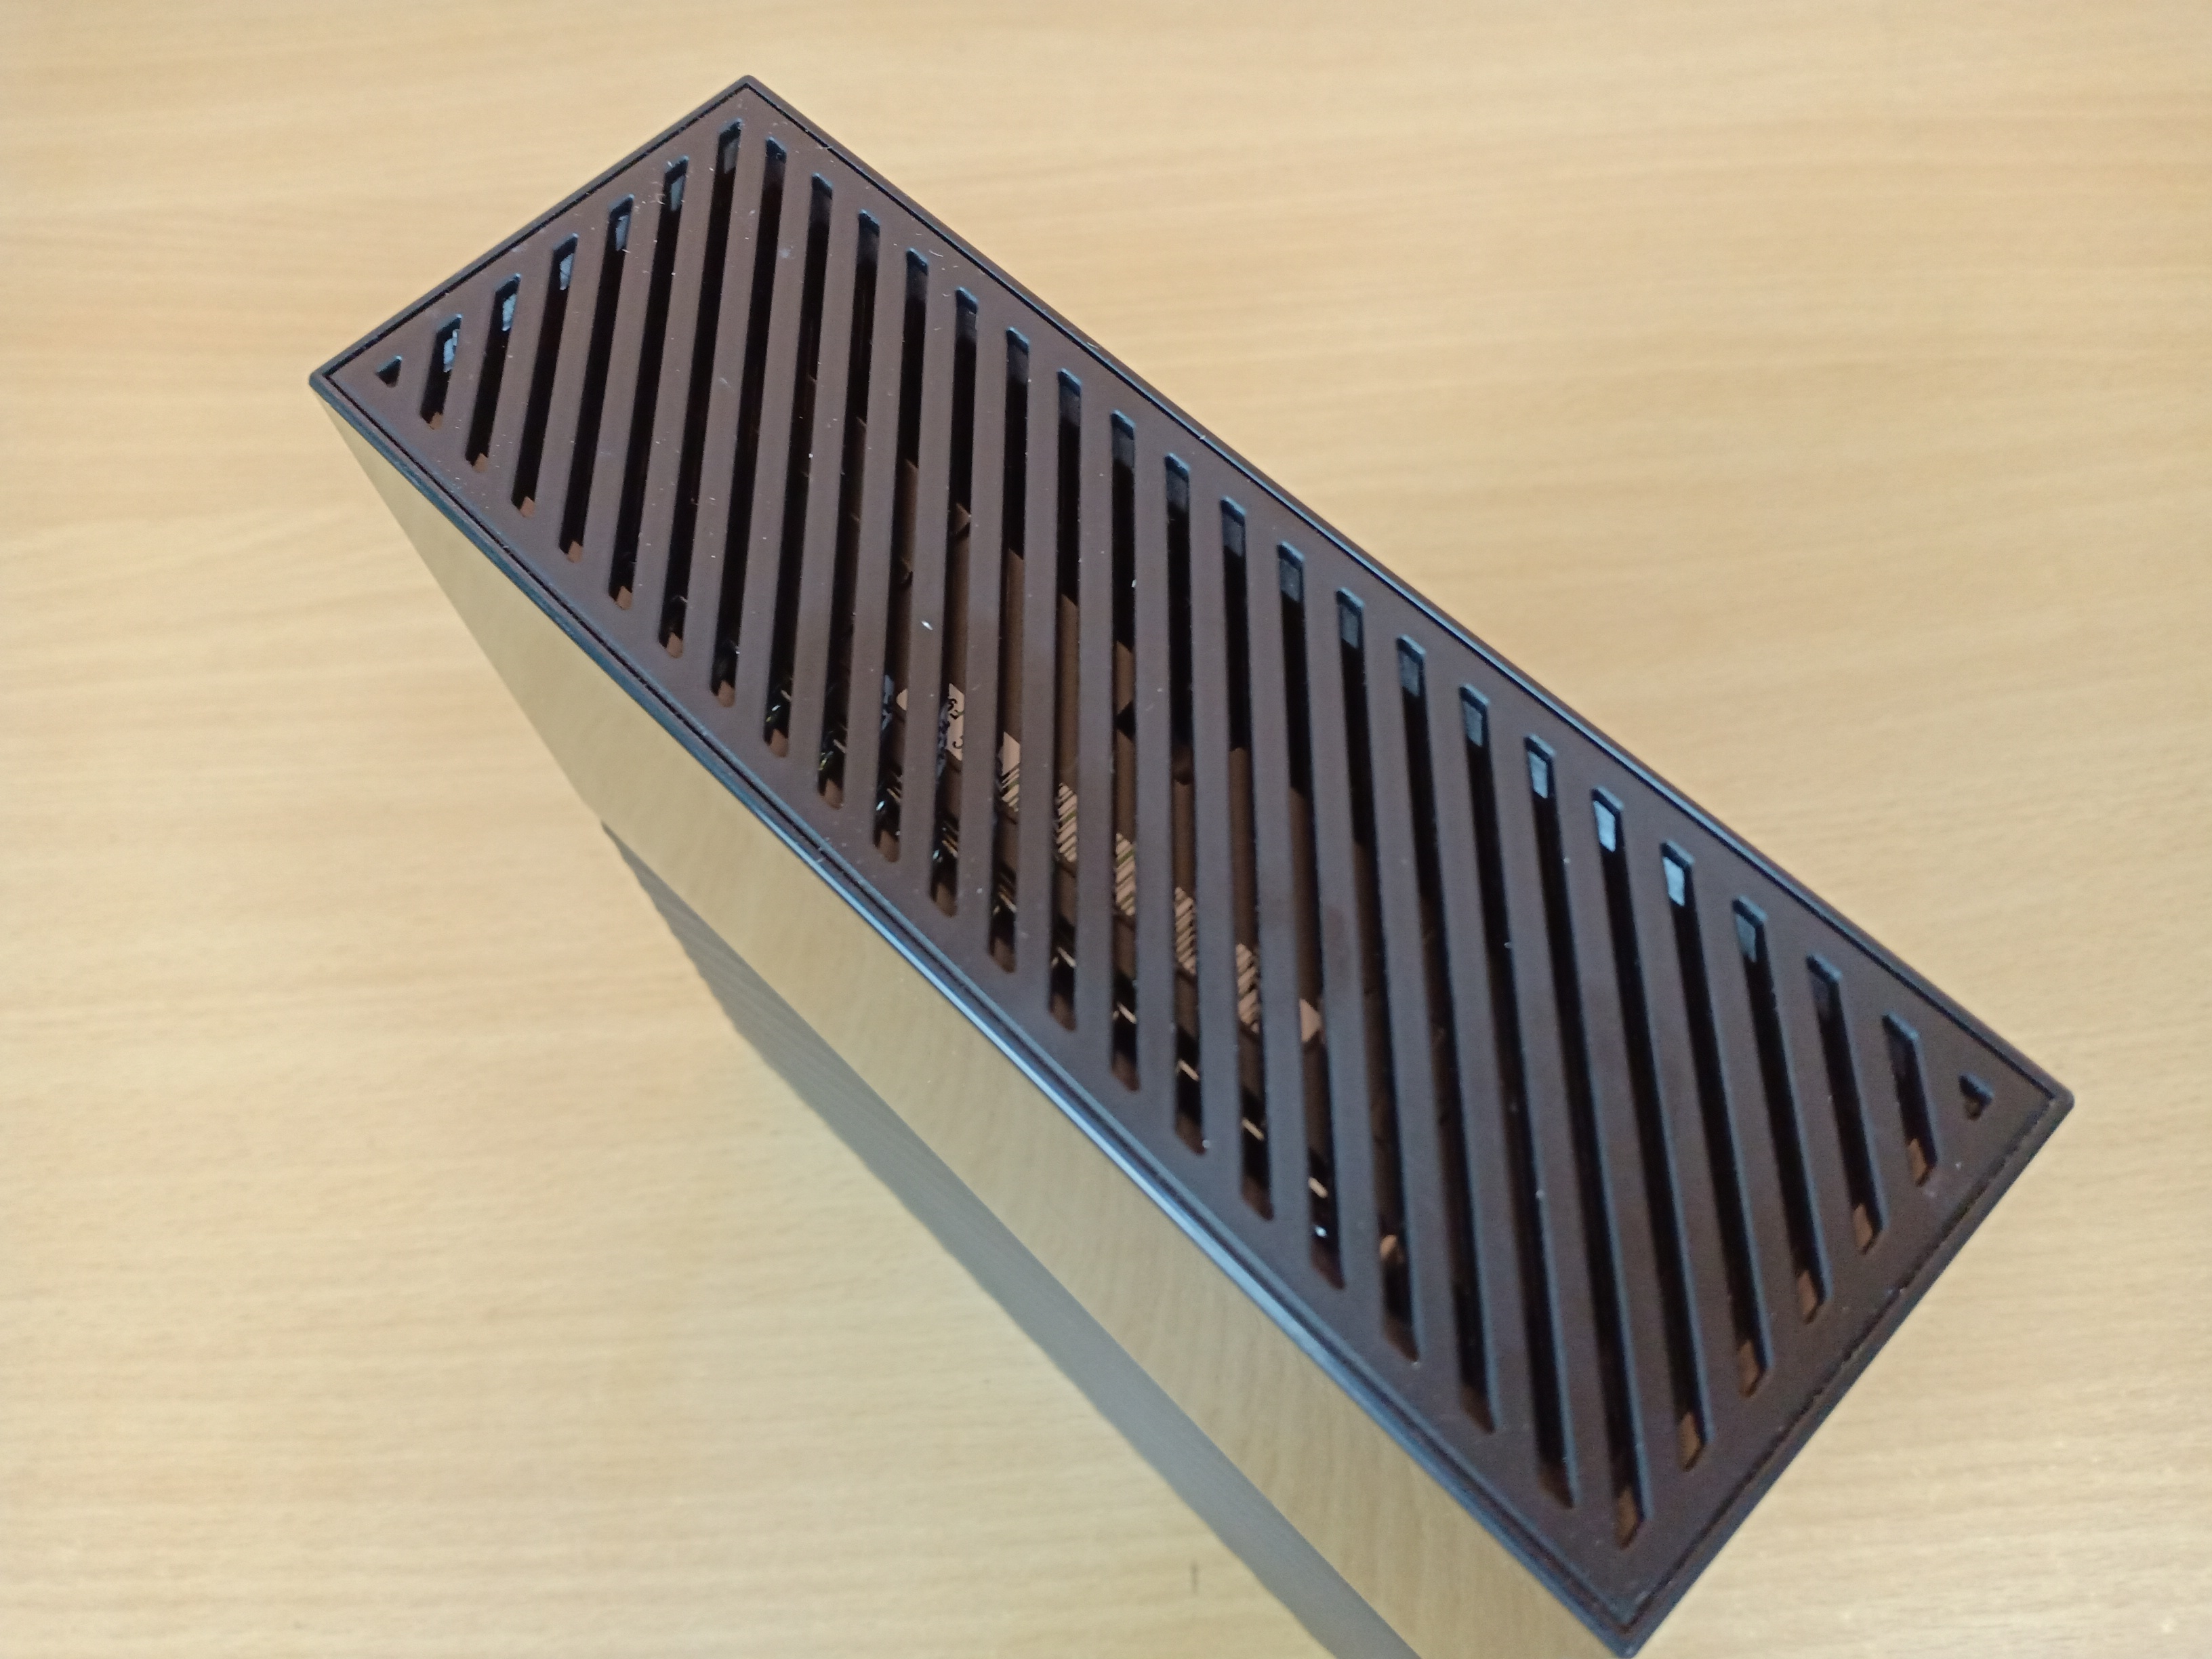 WD My Book 4TB Review: A high performance external drive